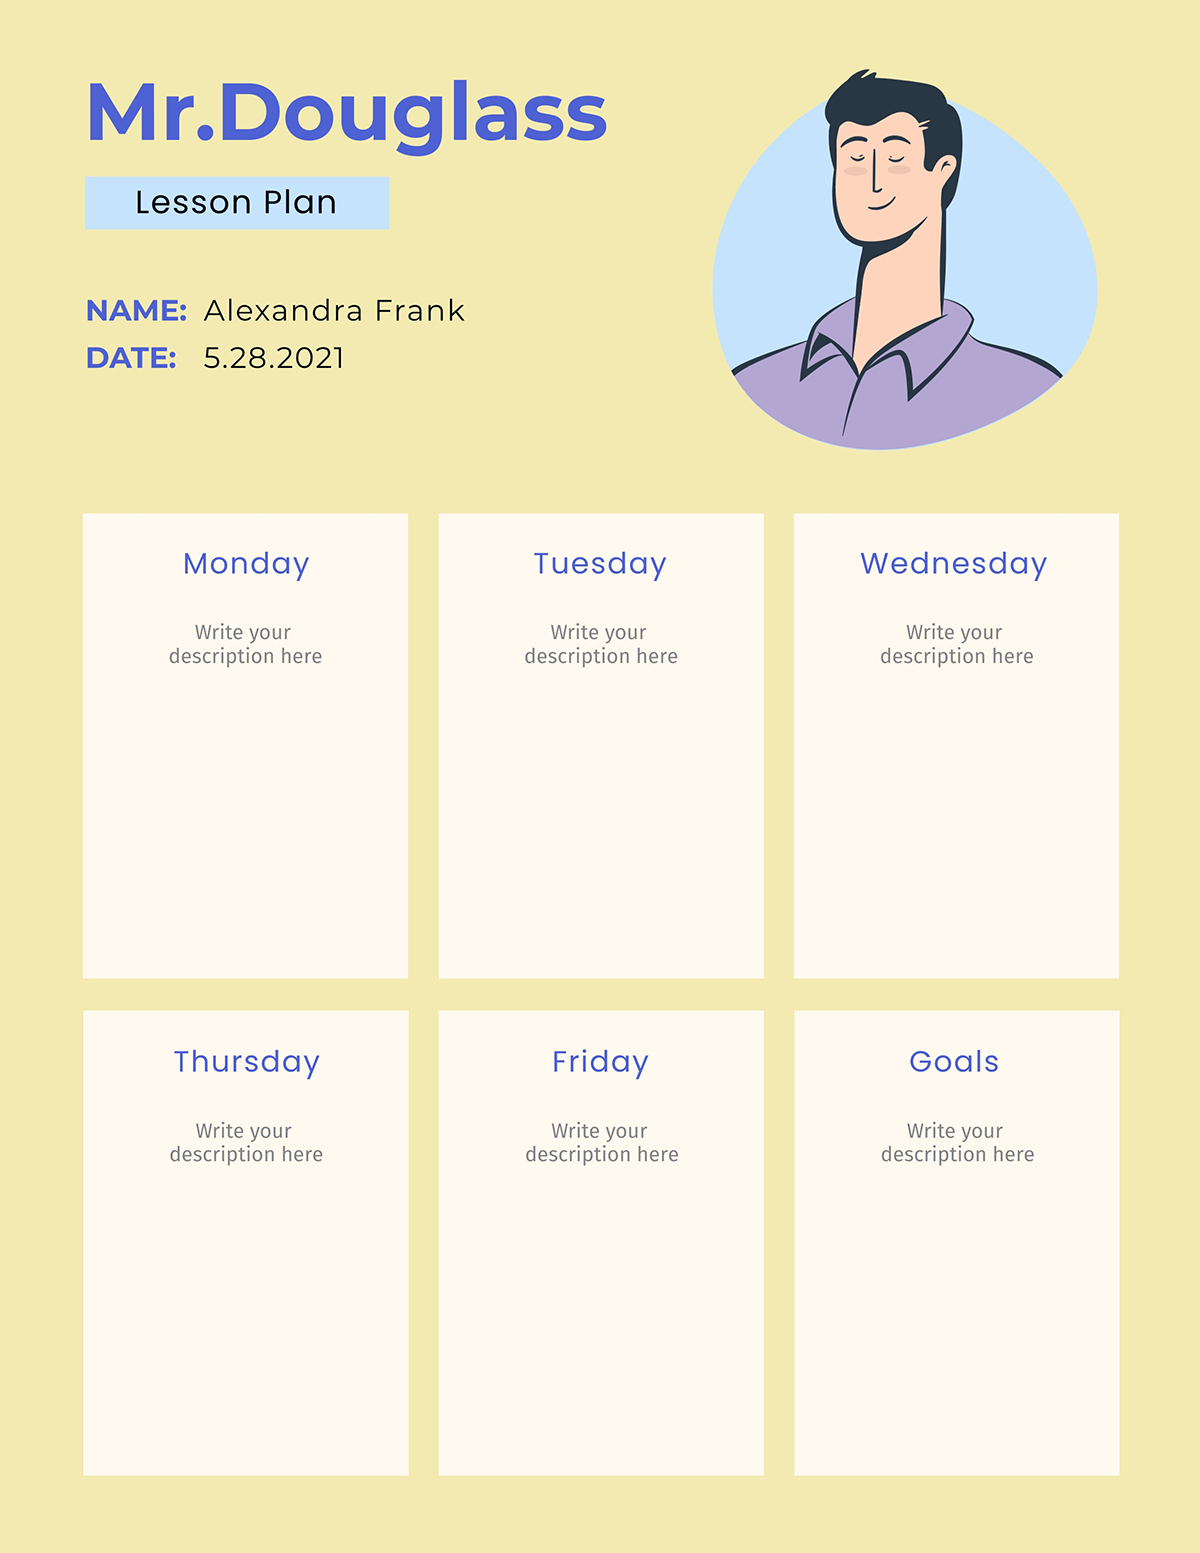 A weekly lesson plan template available in Visme.